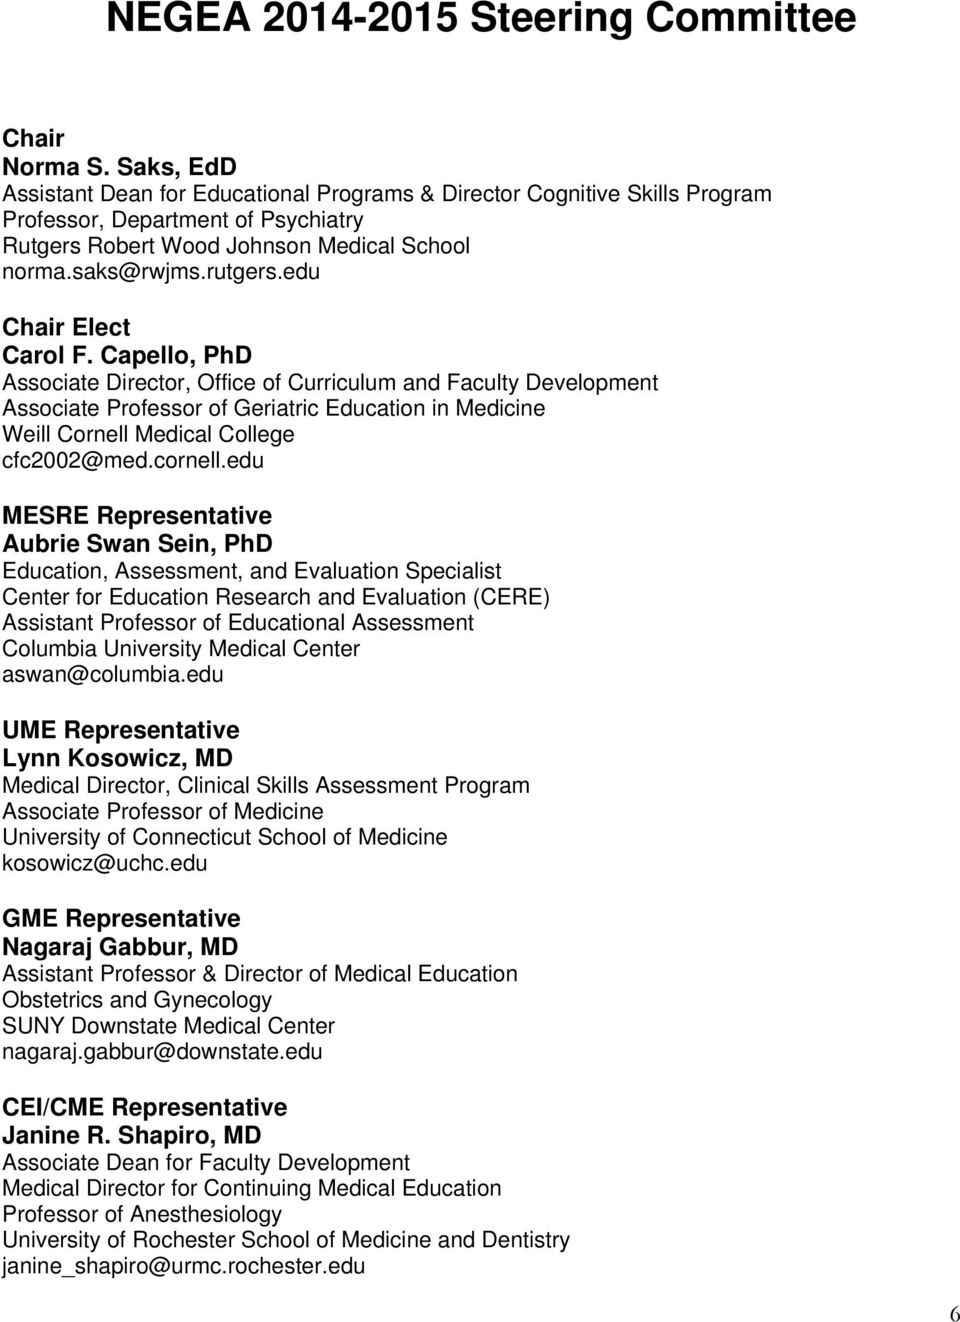 Advancing Medical Education: Aligning Teaching and